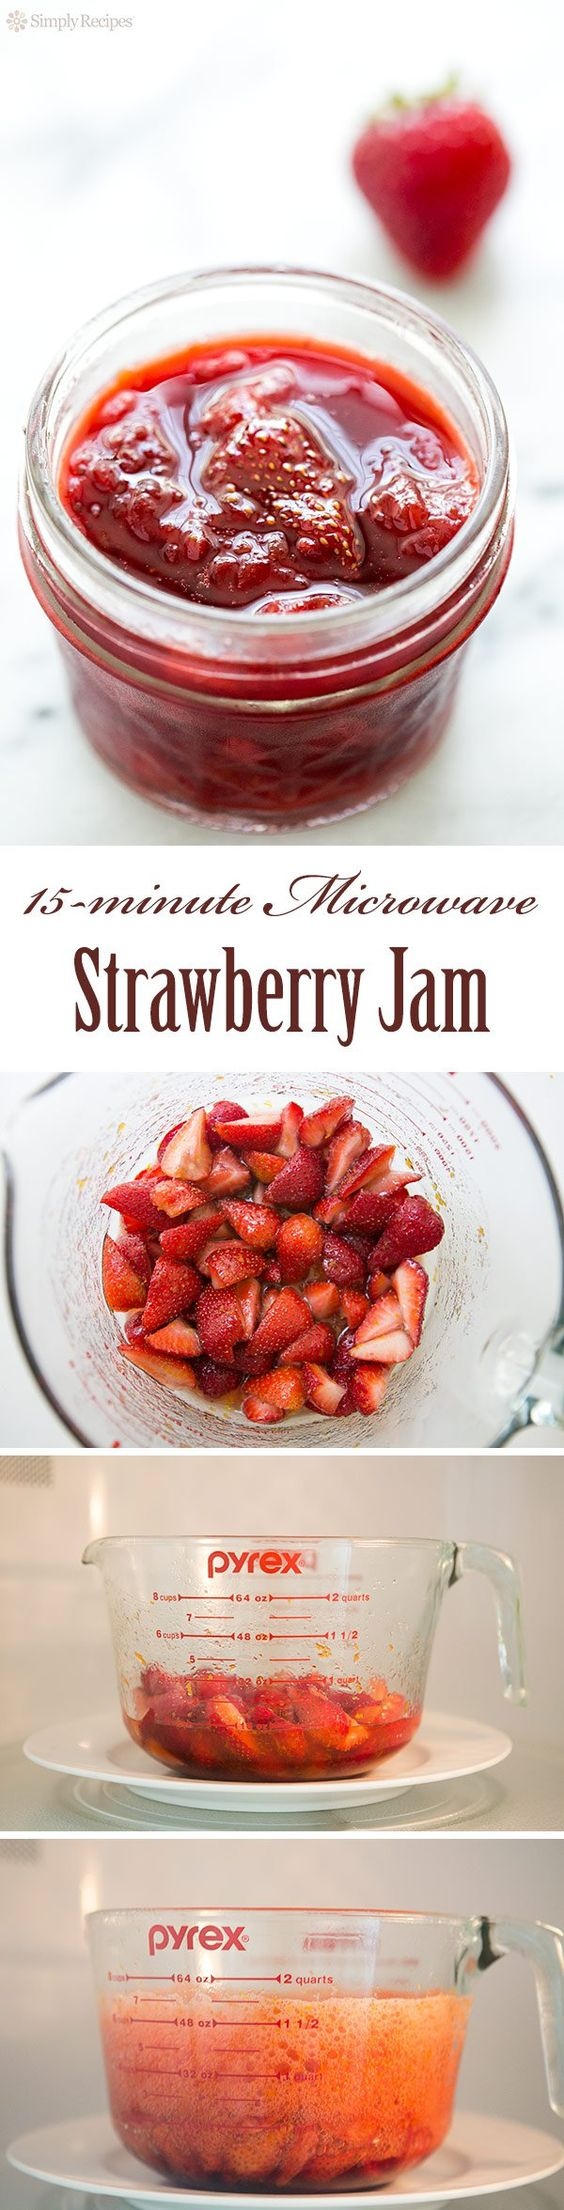 Microwave Strawberry Jam ~ So easy! Small batch strawberry jam that you make in a microwave oven. Cooks in 15 minutes! Easy cleanup. ~ SimplyRecipes.com